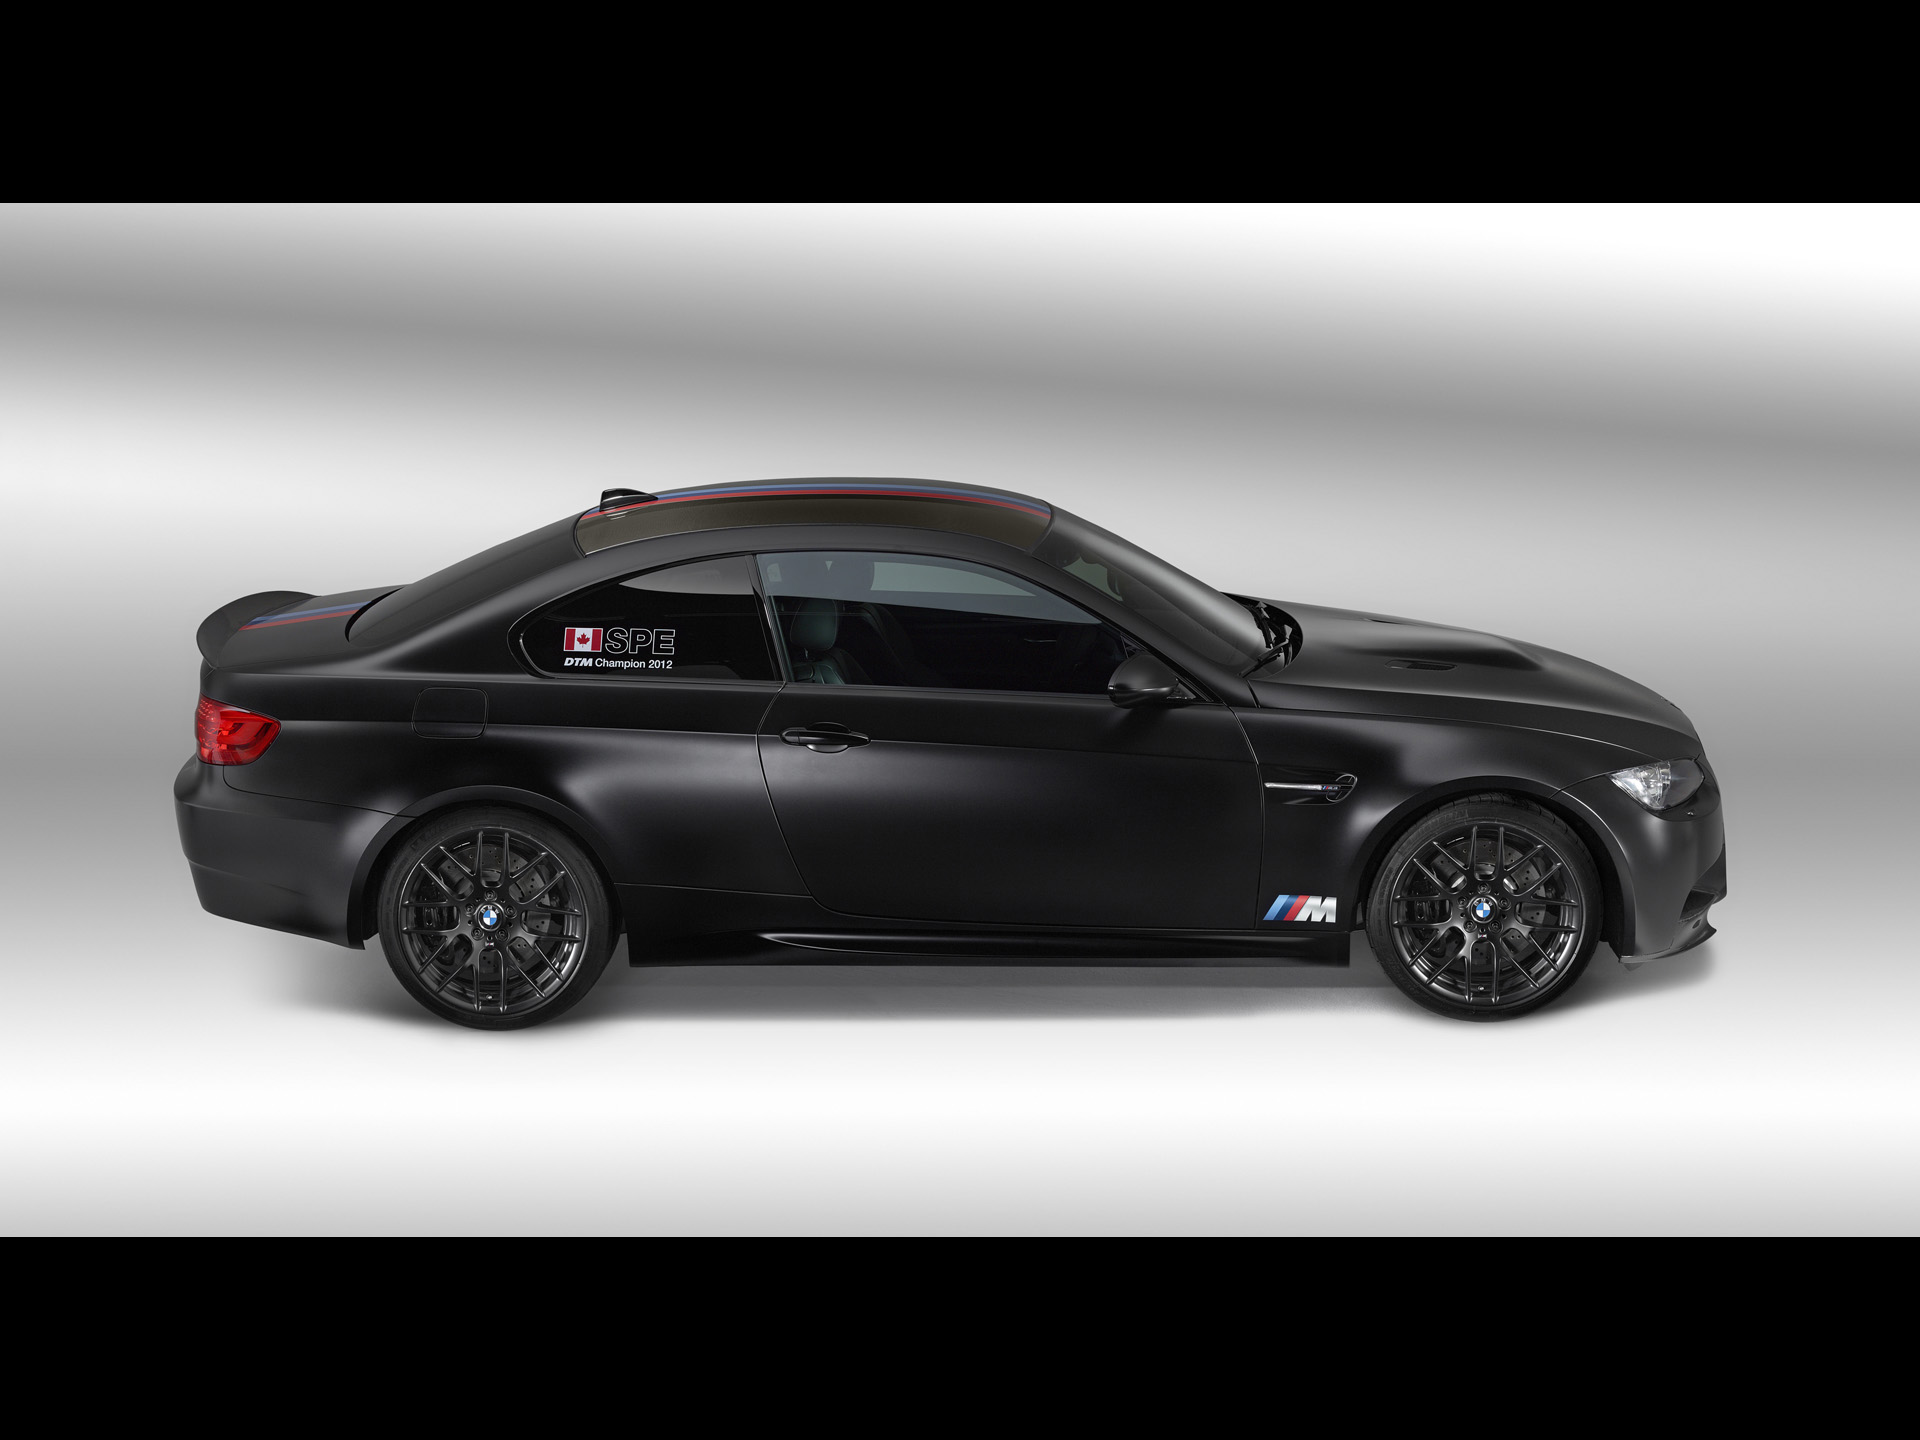 pics of fast cars 2013-BMW-M3-DTM-Champion-Edition-Studio-2-1920×1440